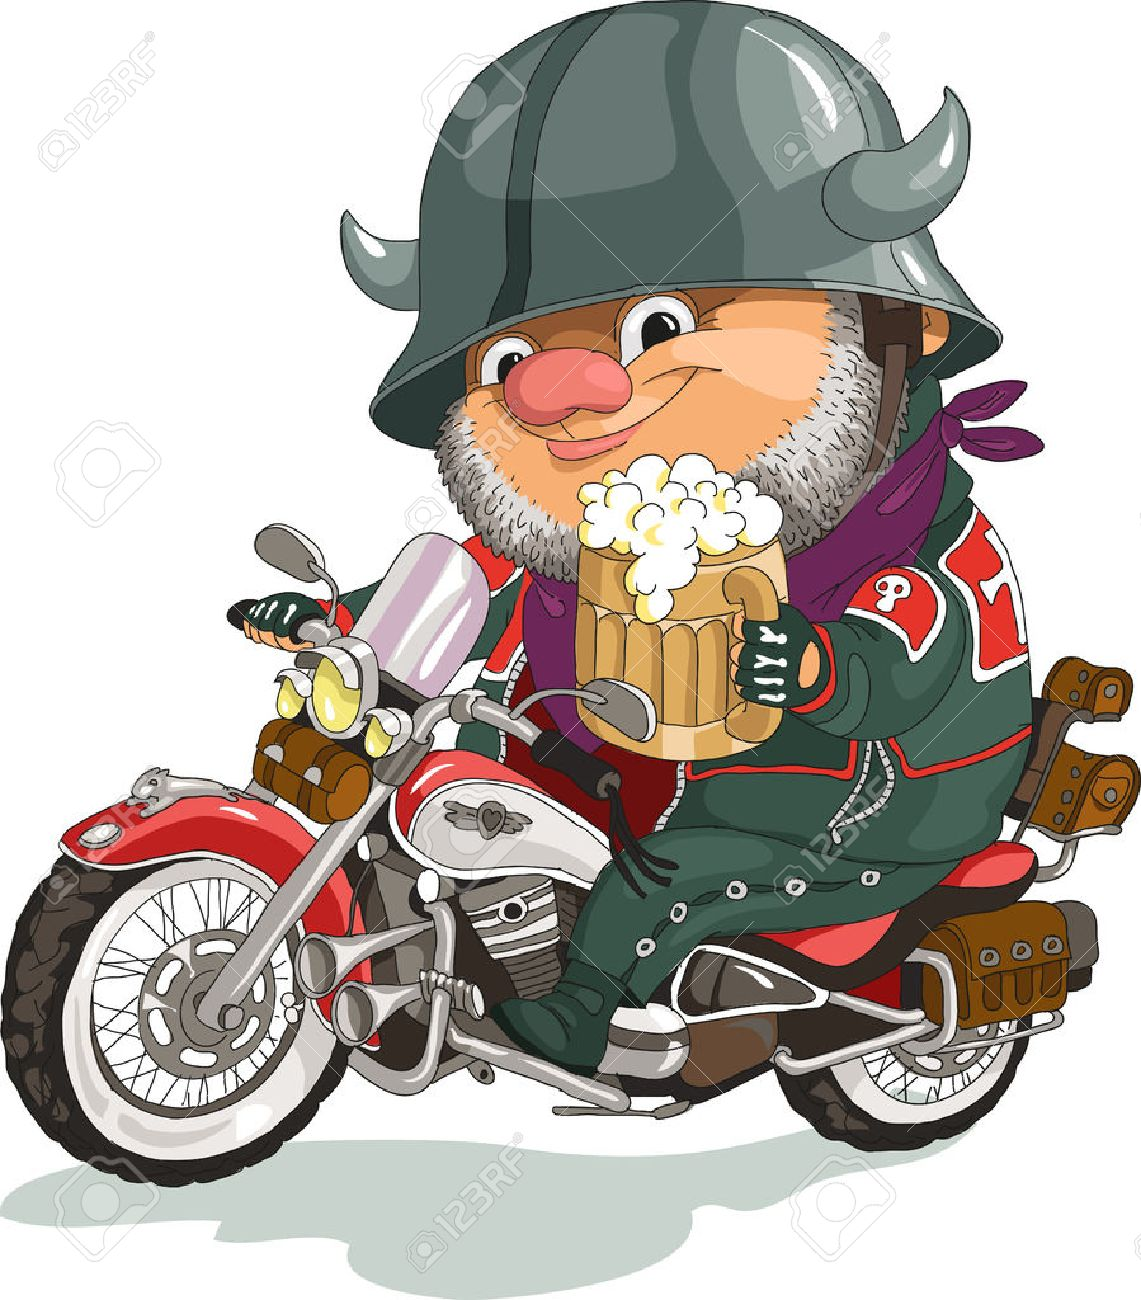 Funny cartoon. Vector illustration. Cool biker sitting on the motorcycle with a beer. Isolated objects. - 46515302